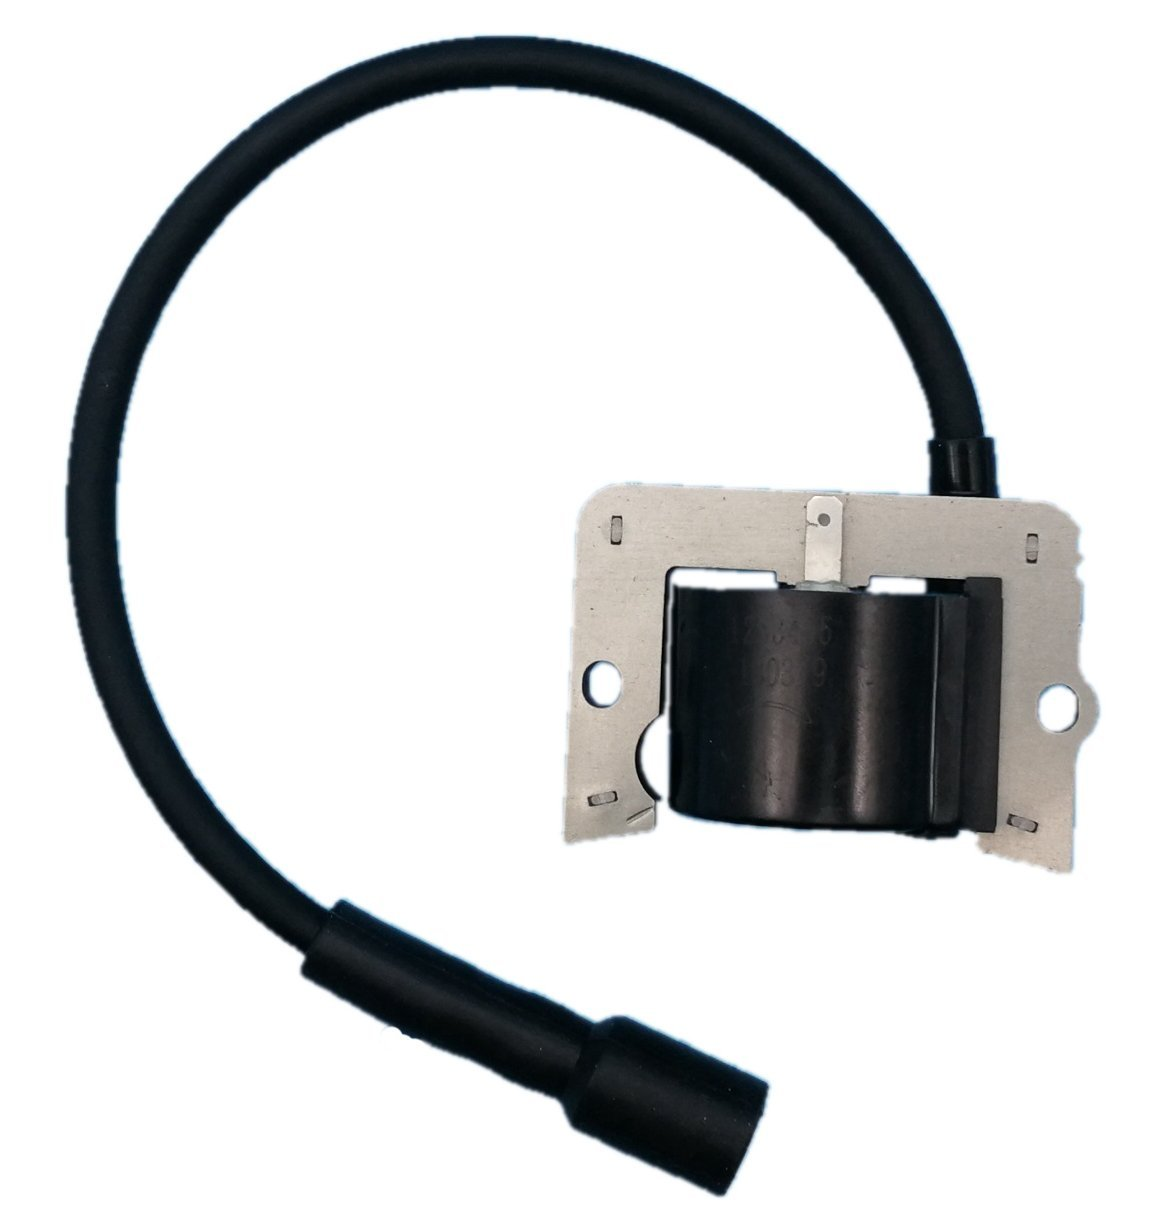 Generic Ignition Coil for Kohler CH11 CH12.5 CH13 CH14 CH15 CH410 CH430 CH450 CV11 CV12.5 CV13 CV14 CV15 CV430 CV460 CV461 CV490 CV491 CV492 CV493 Replace 12-584-02 12-584-05 12-584-05-S New Z23